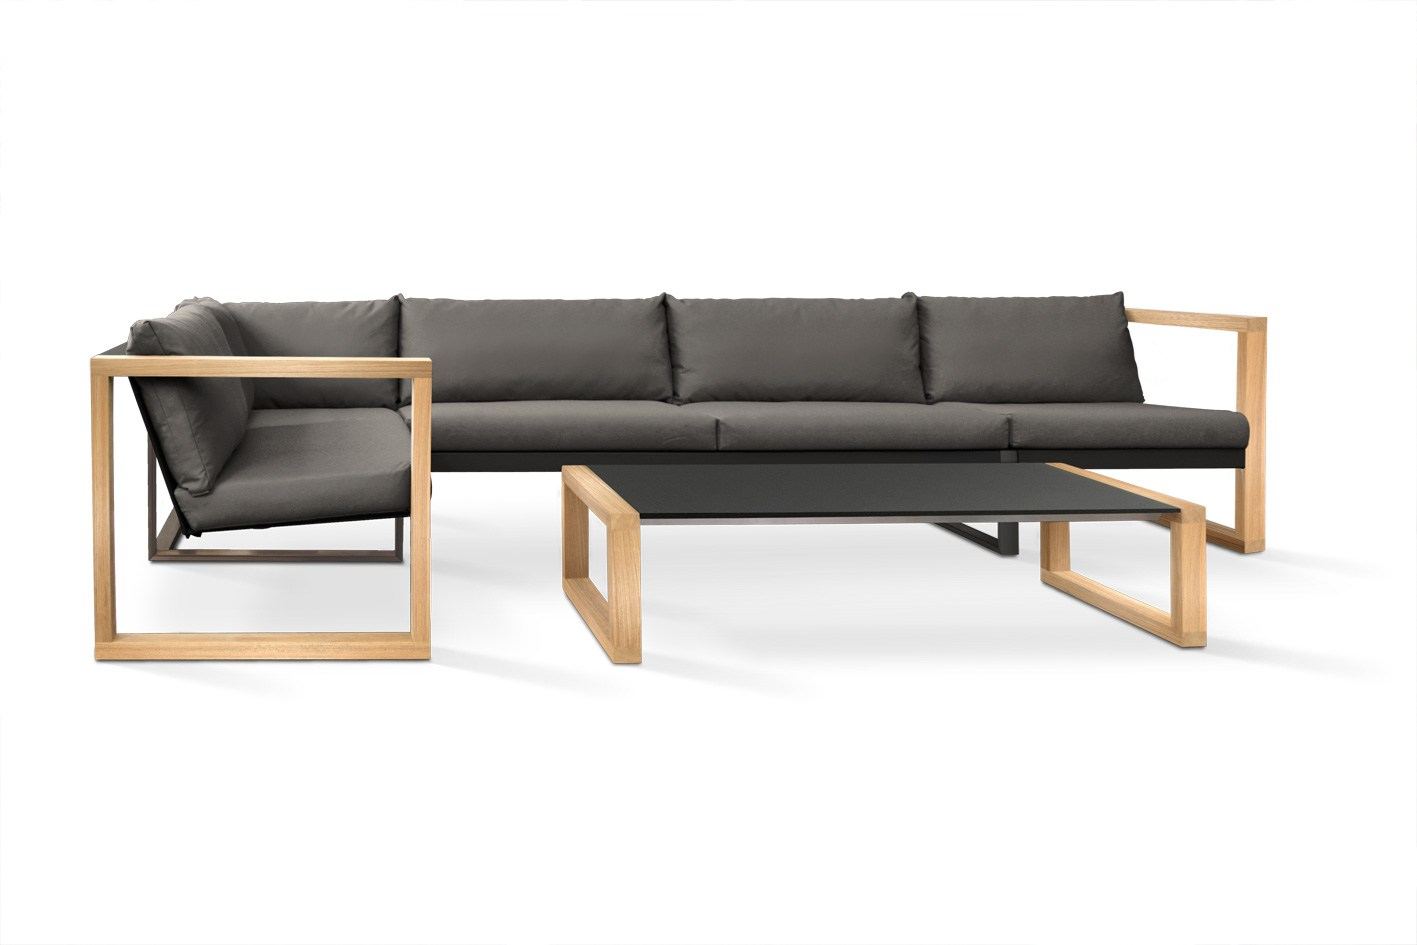 Sled base sectional batyline sofa modular lounge teak by for Sofa exterior a medida